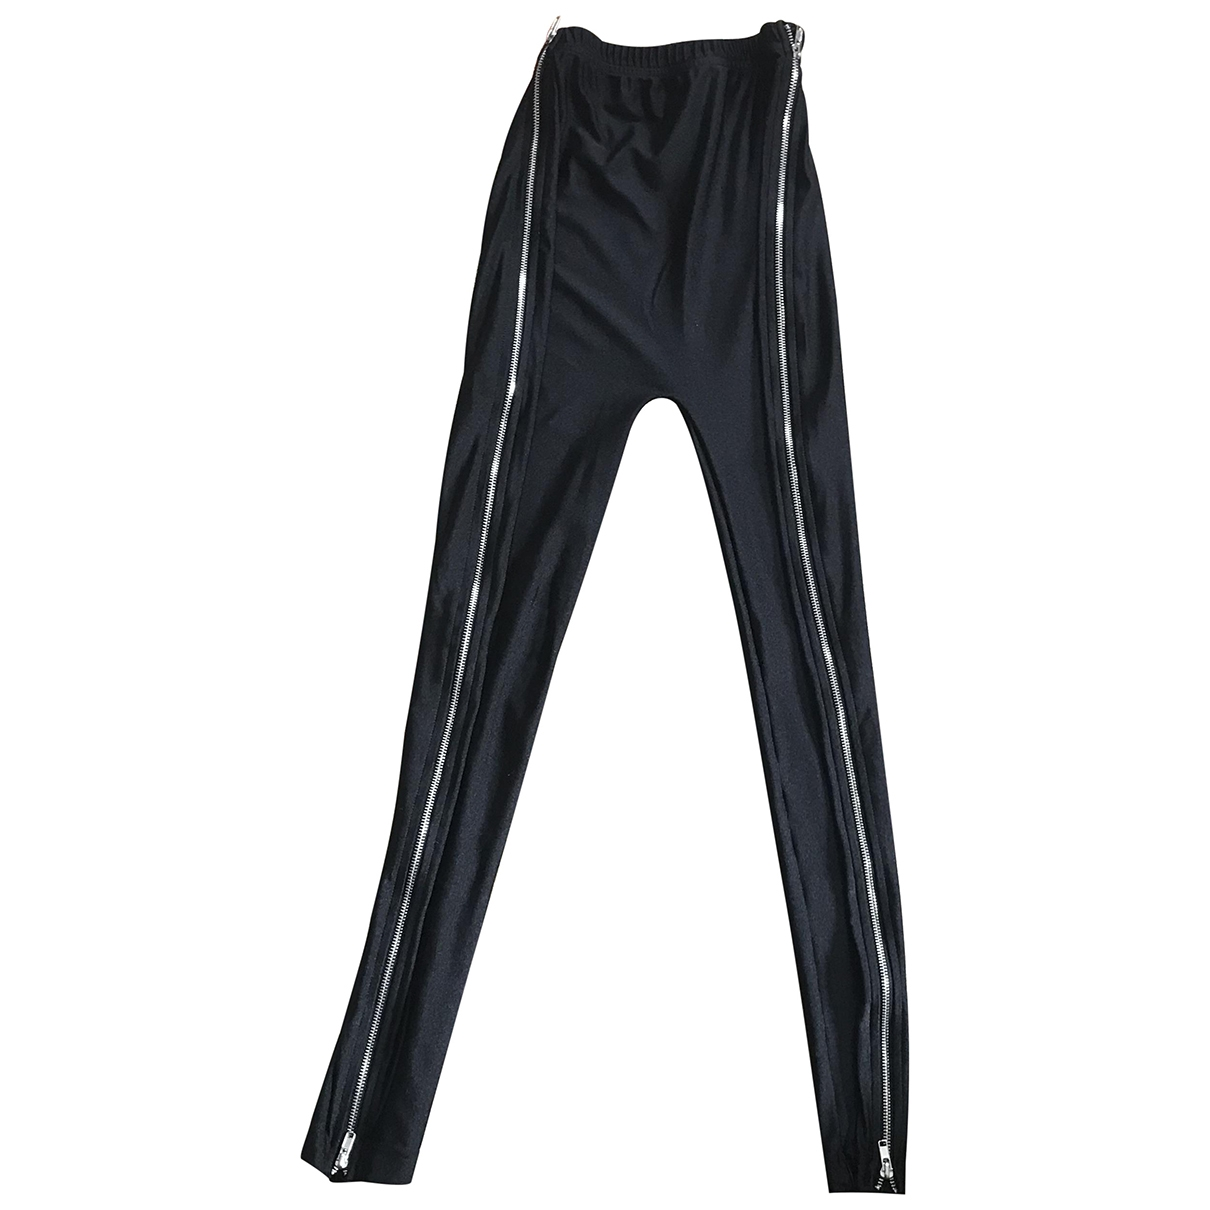 American Apparel \N Black Trousers for Women S International